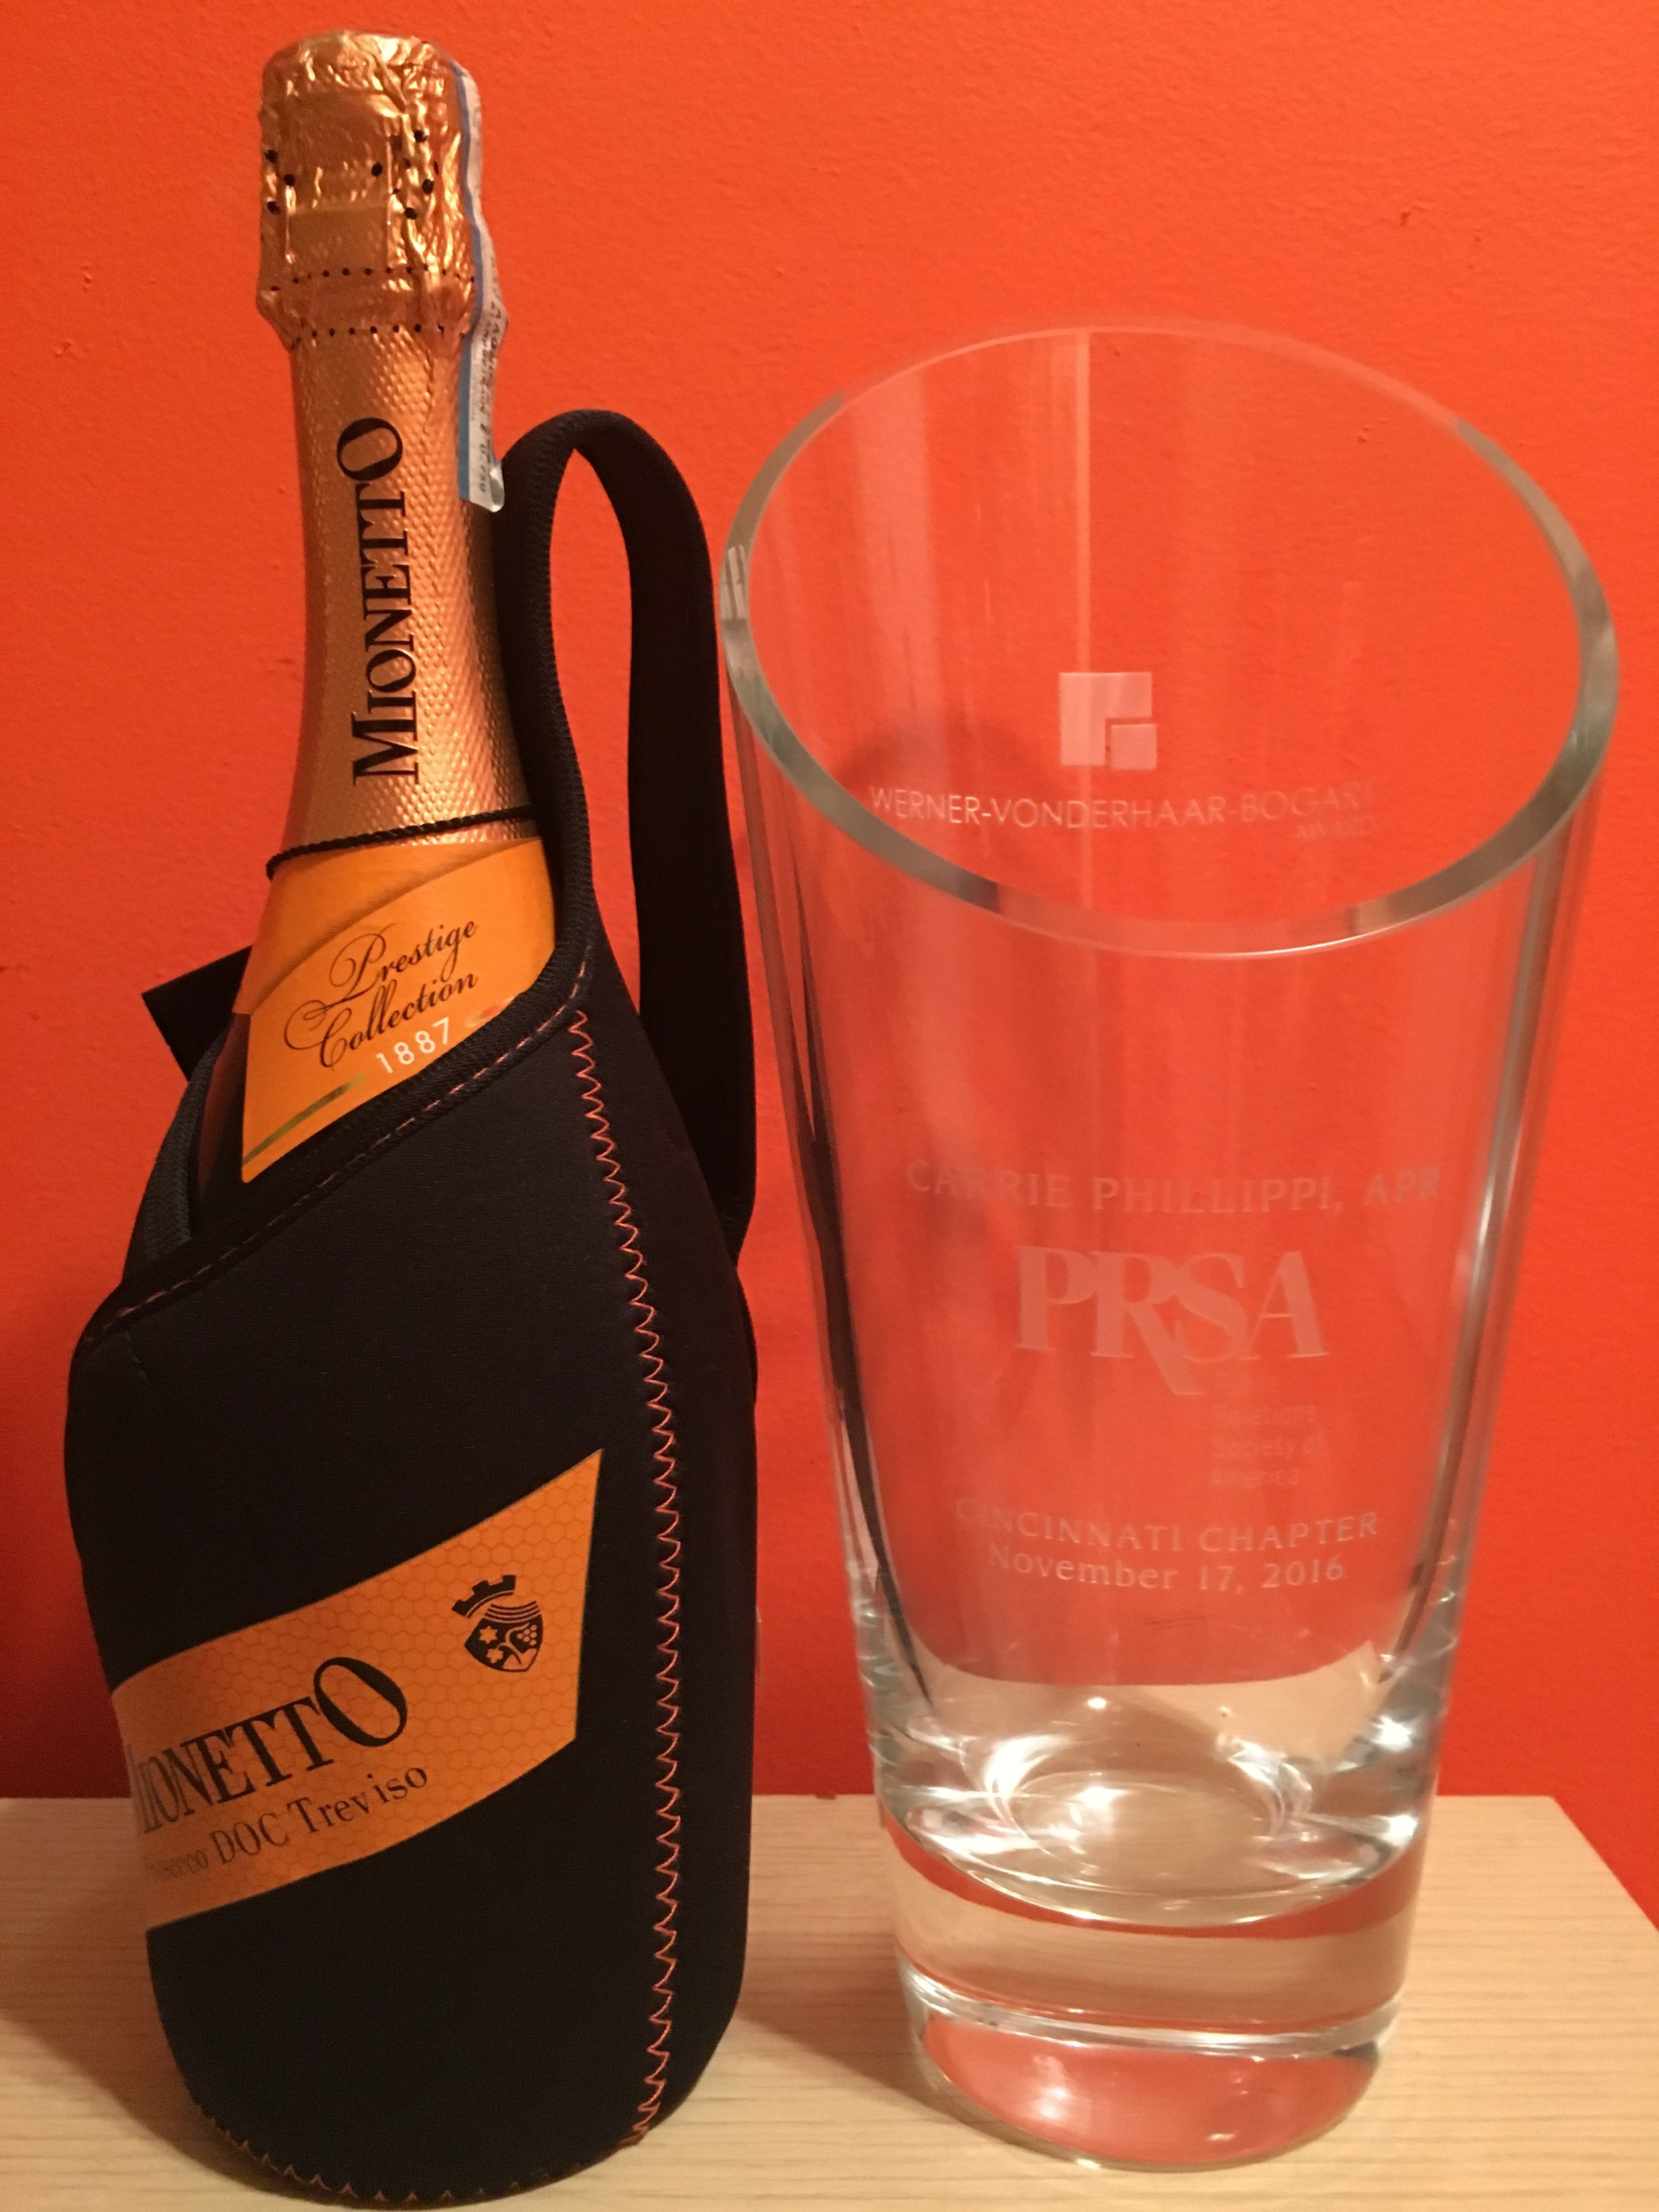 Nominate an outstanding local PR pro for the Werner Vonderhaar Bogart Award. Champagne not included.